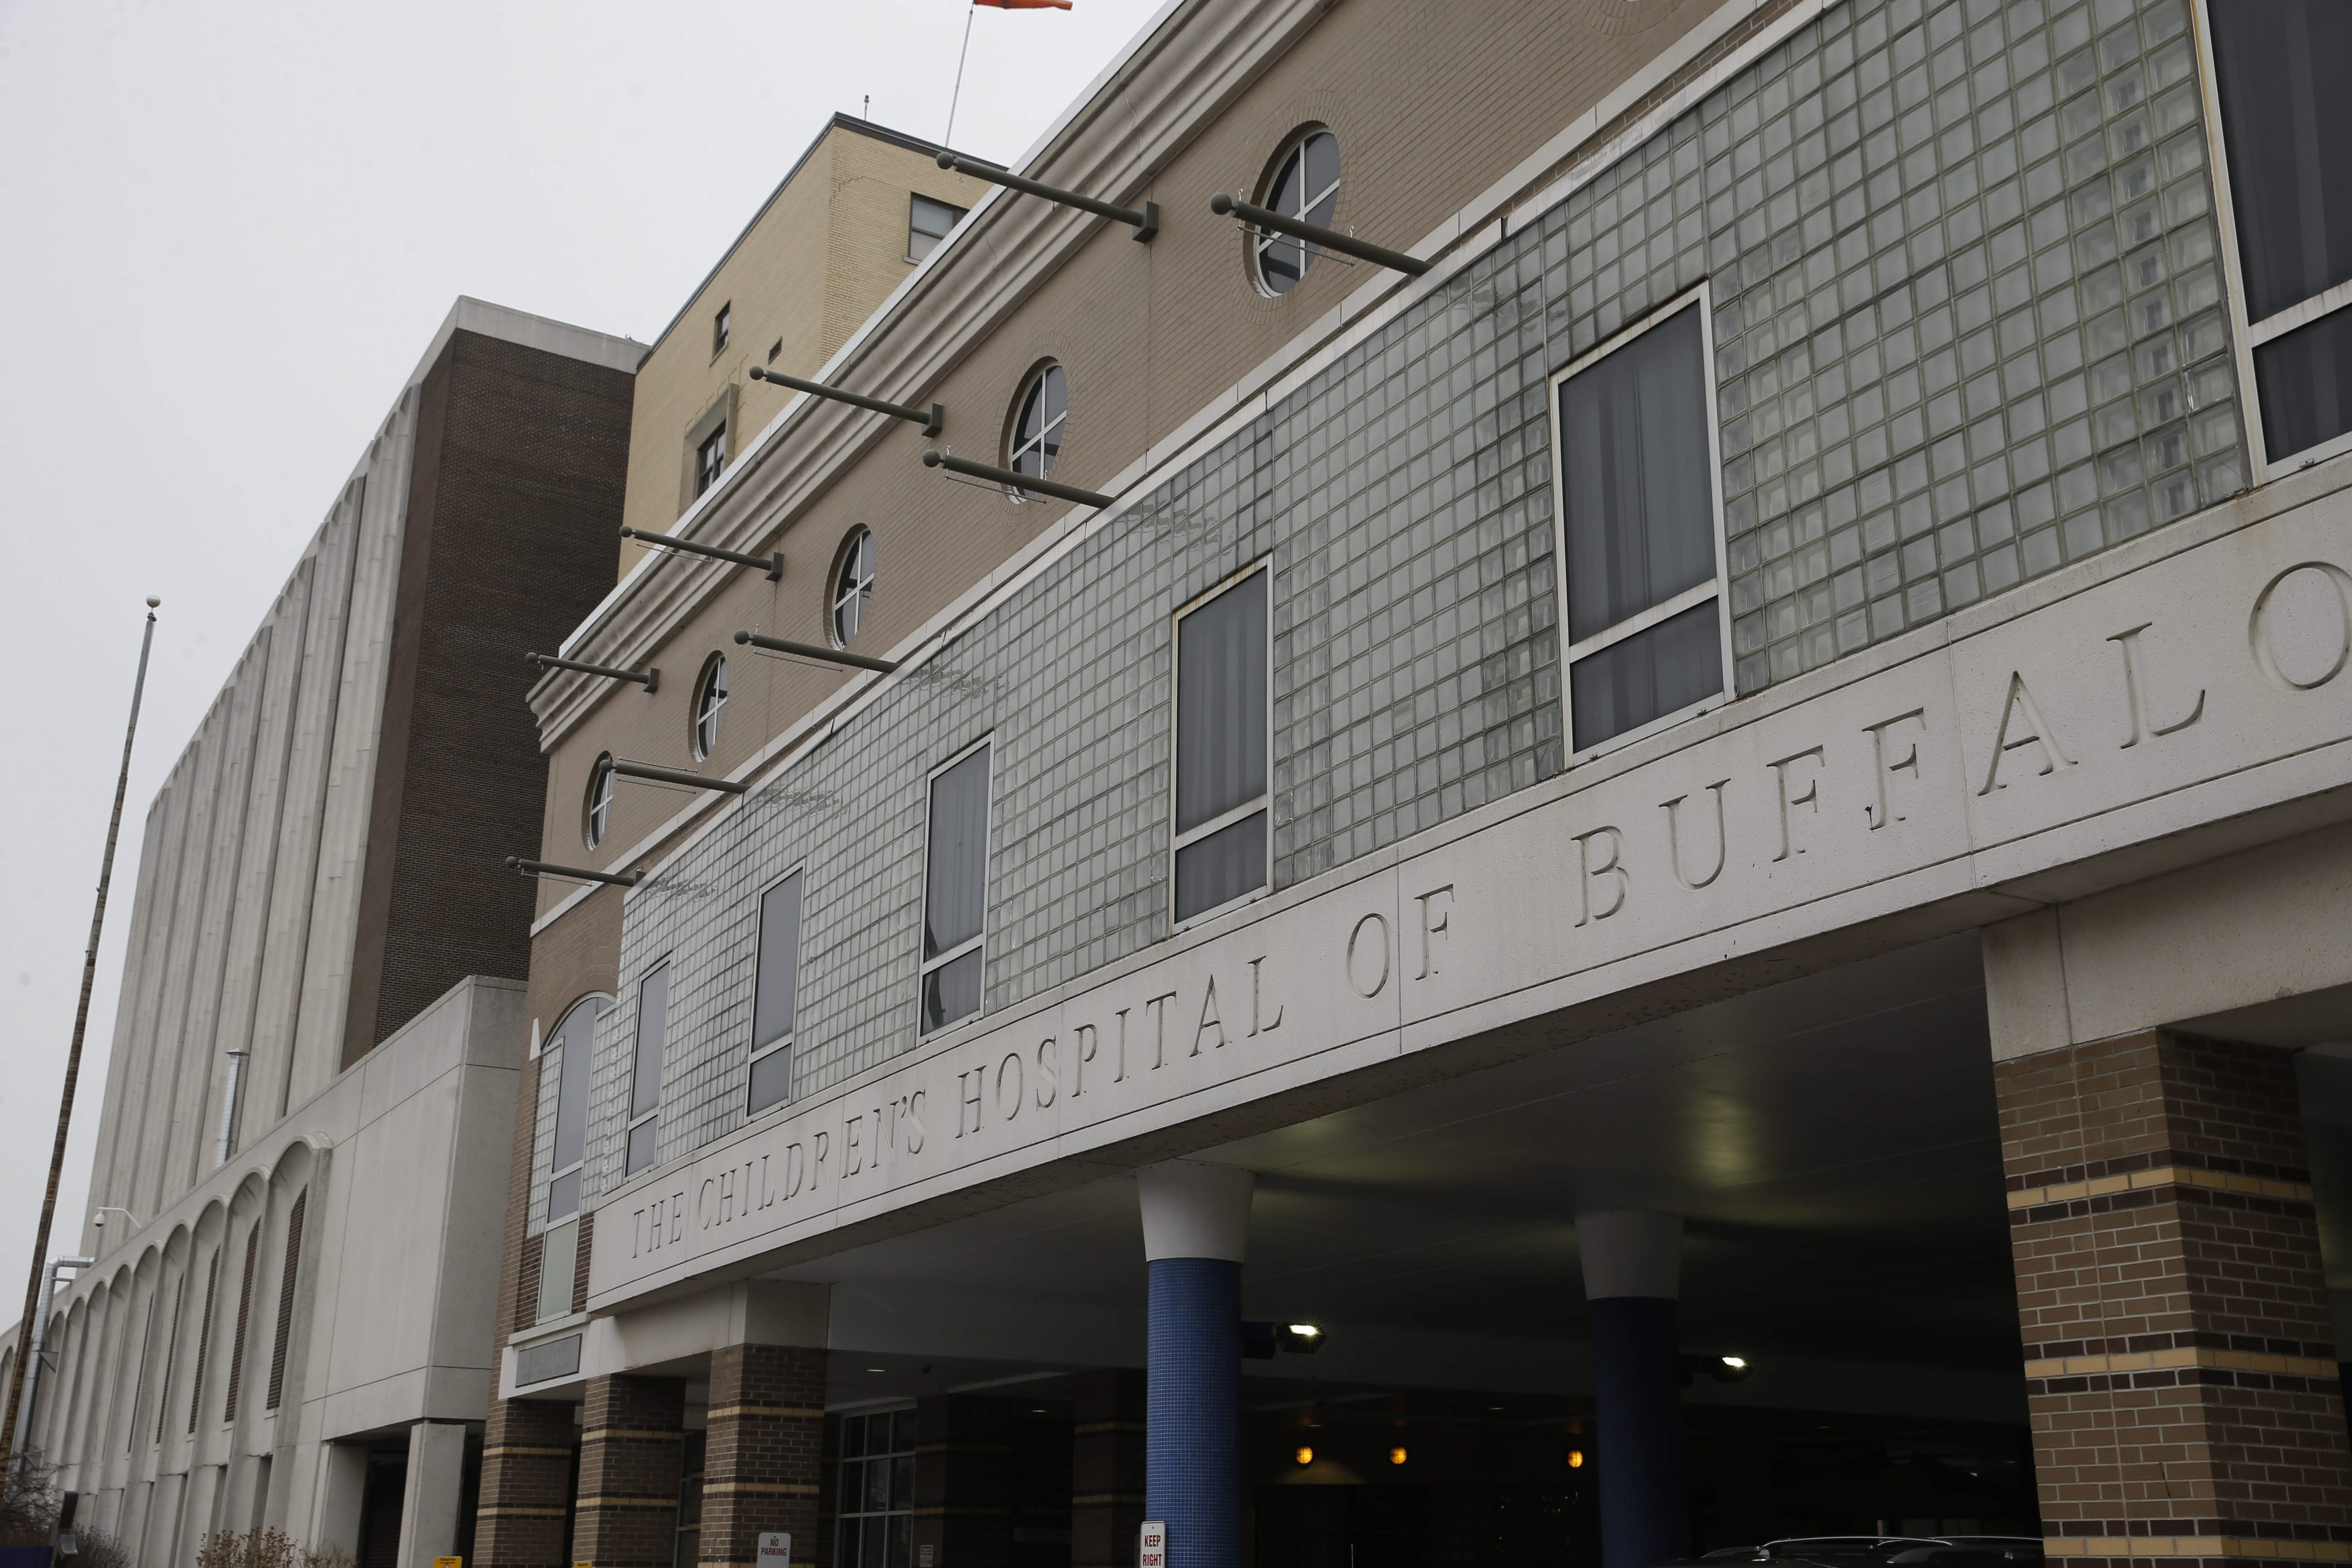 The possibility of repurposing the Women's and Children's Hospital site generated a significant number of ideas from developers. (Buffalo News file photo)